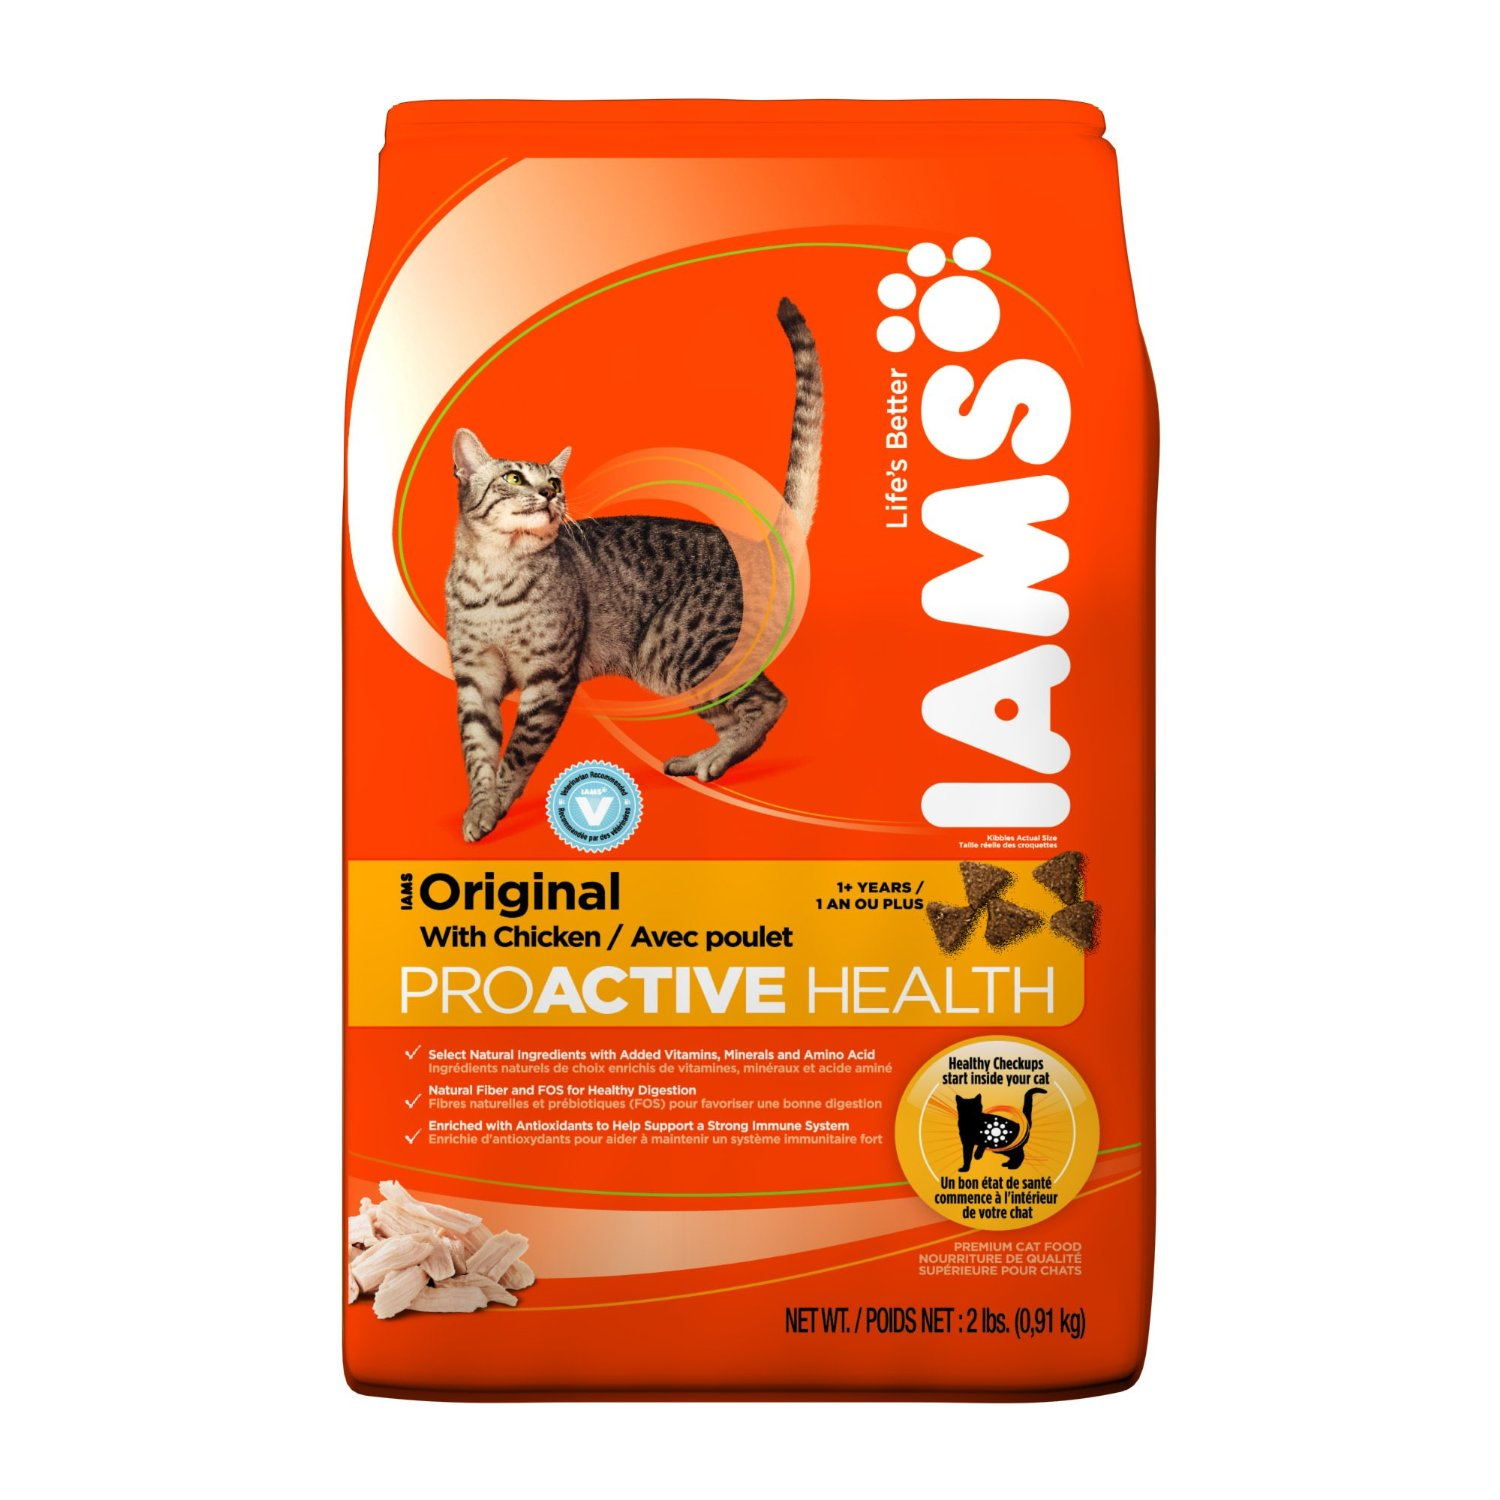 Iams Cat Food Coupons